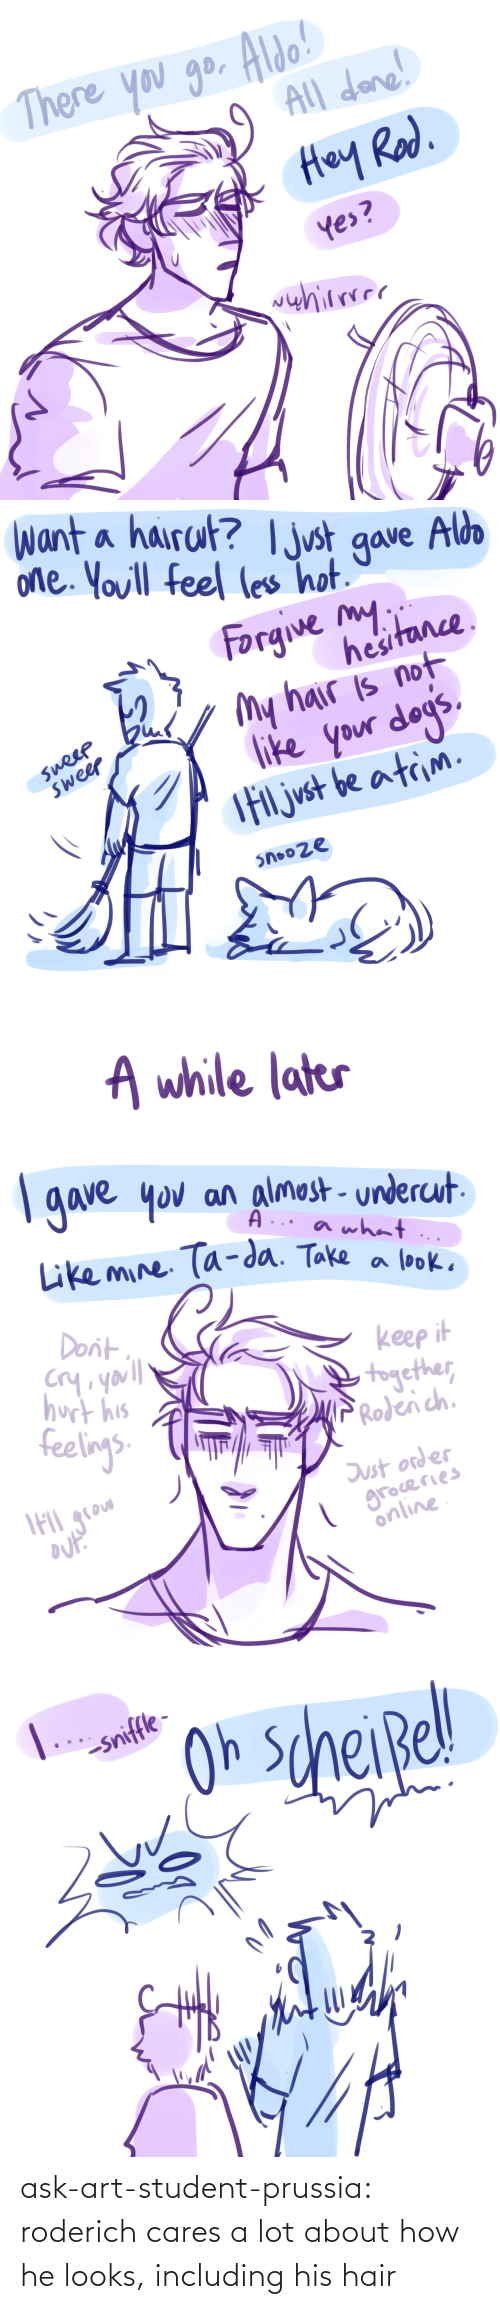 Looks: ask-art-student-prussia:  roderich cares a lot about how he looks, including his hair